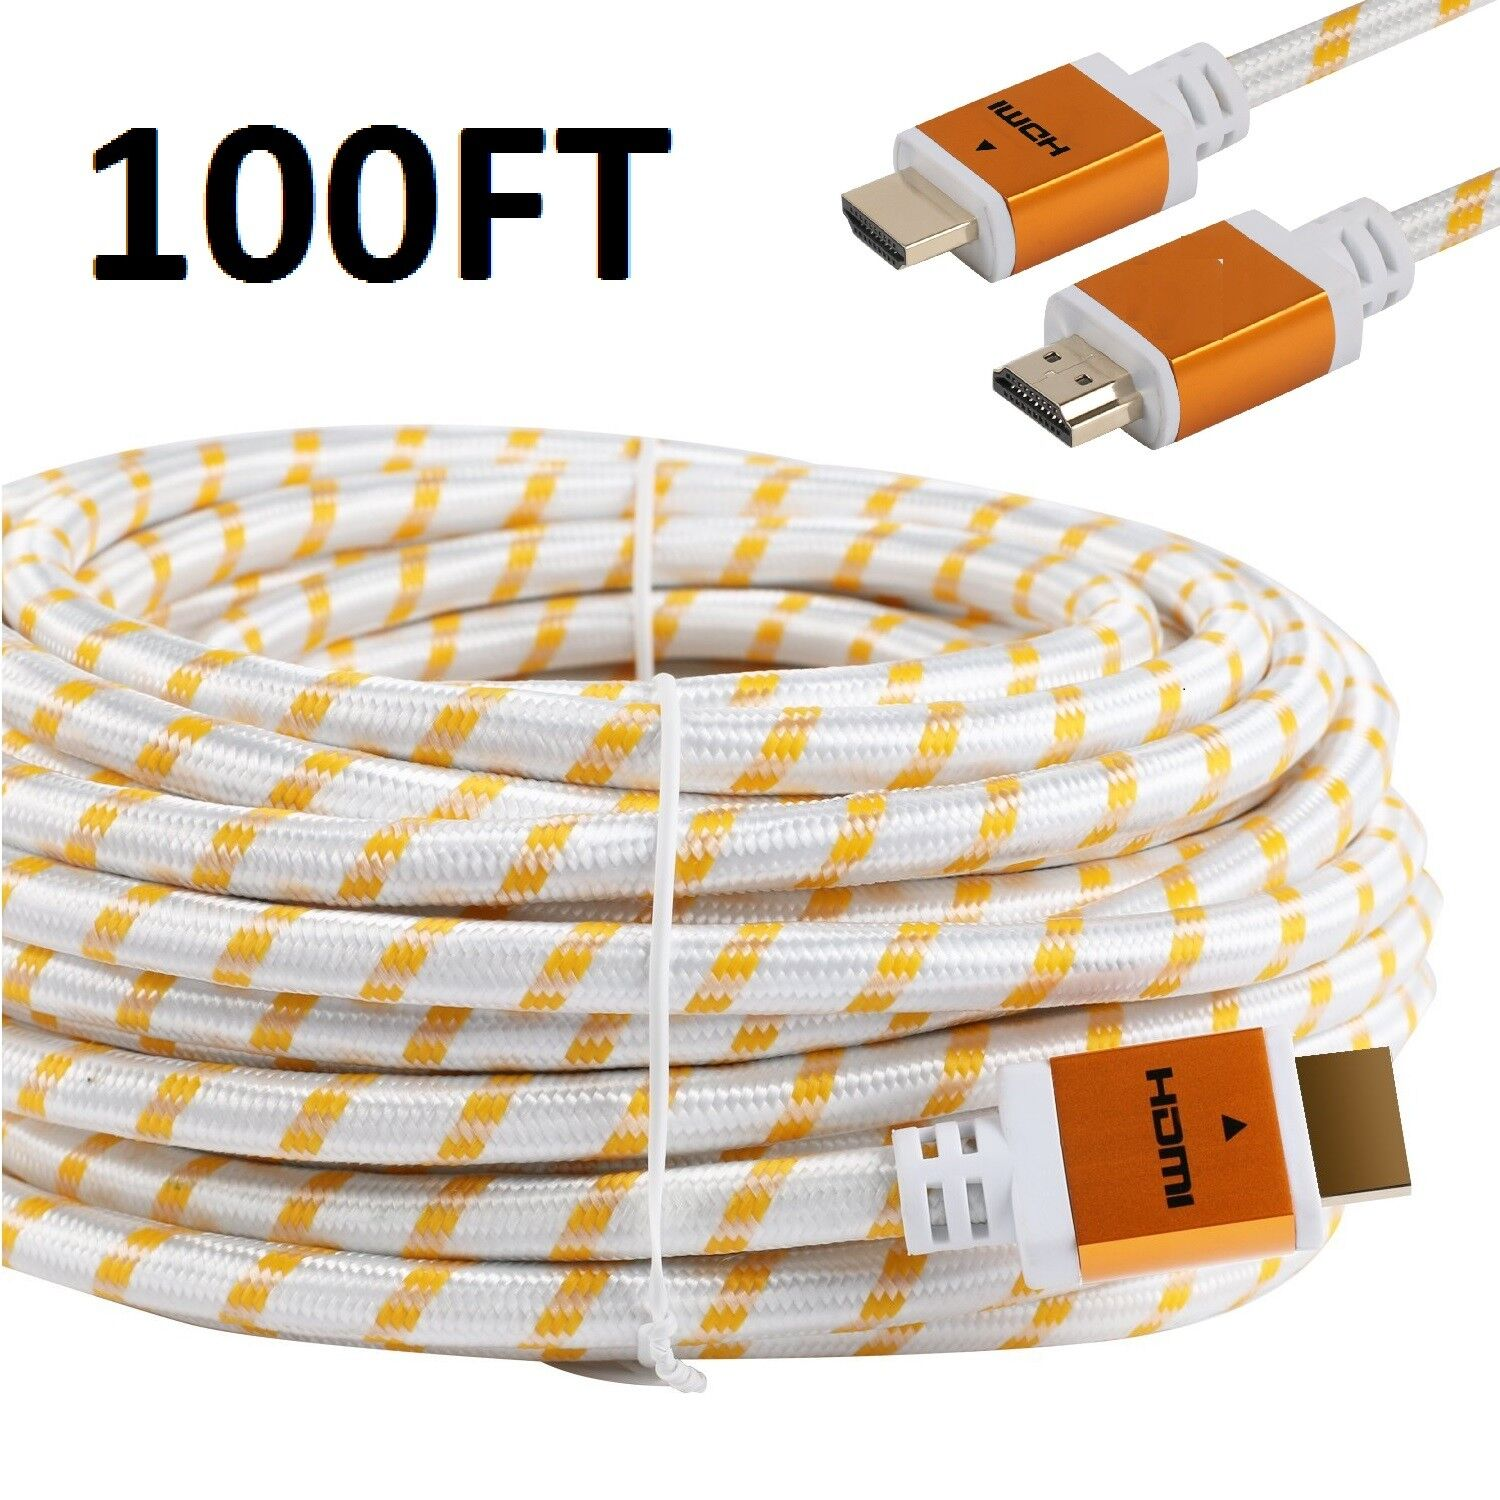 PREMIUM HDMI CABLE 100FT For 3D DVD PS3 HDTV XBOX LCD HD TV 1080P v1.4 White US Consumer Electronics